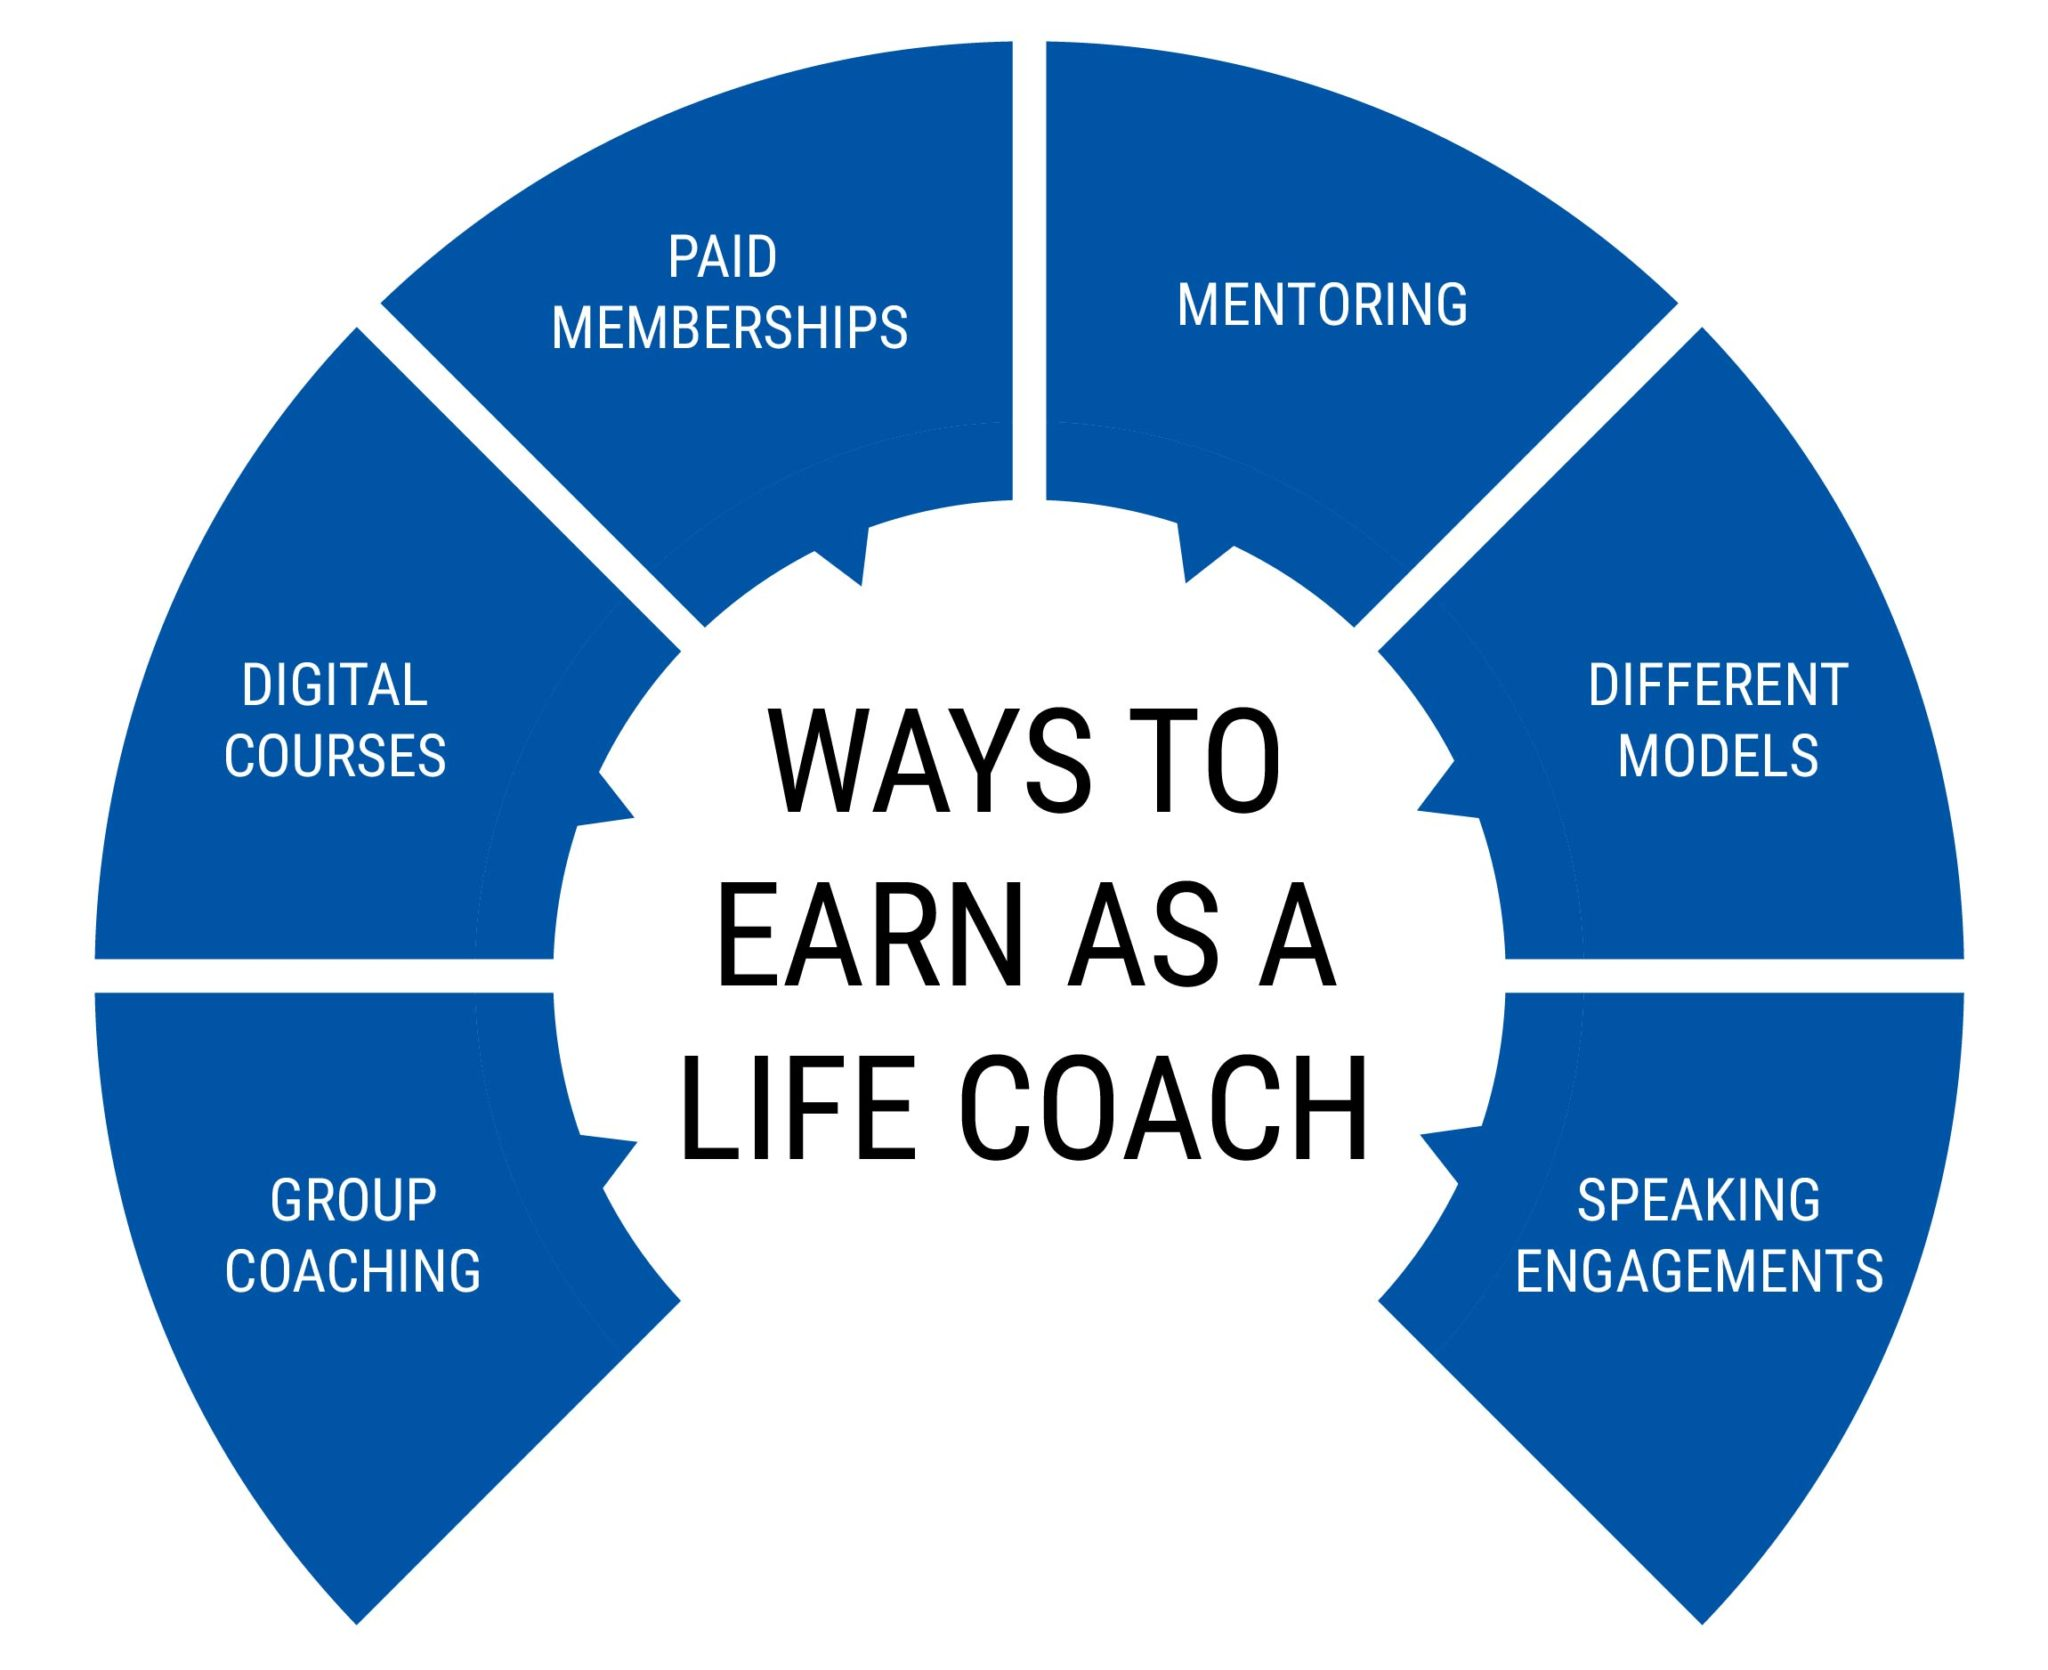 WAYS TO EARN AS A LIFE COACH